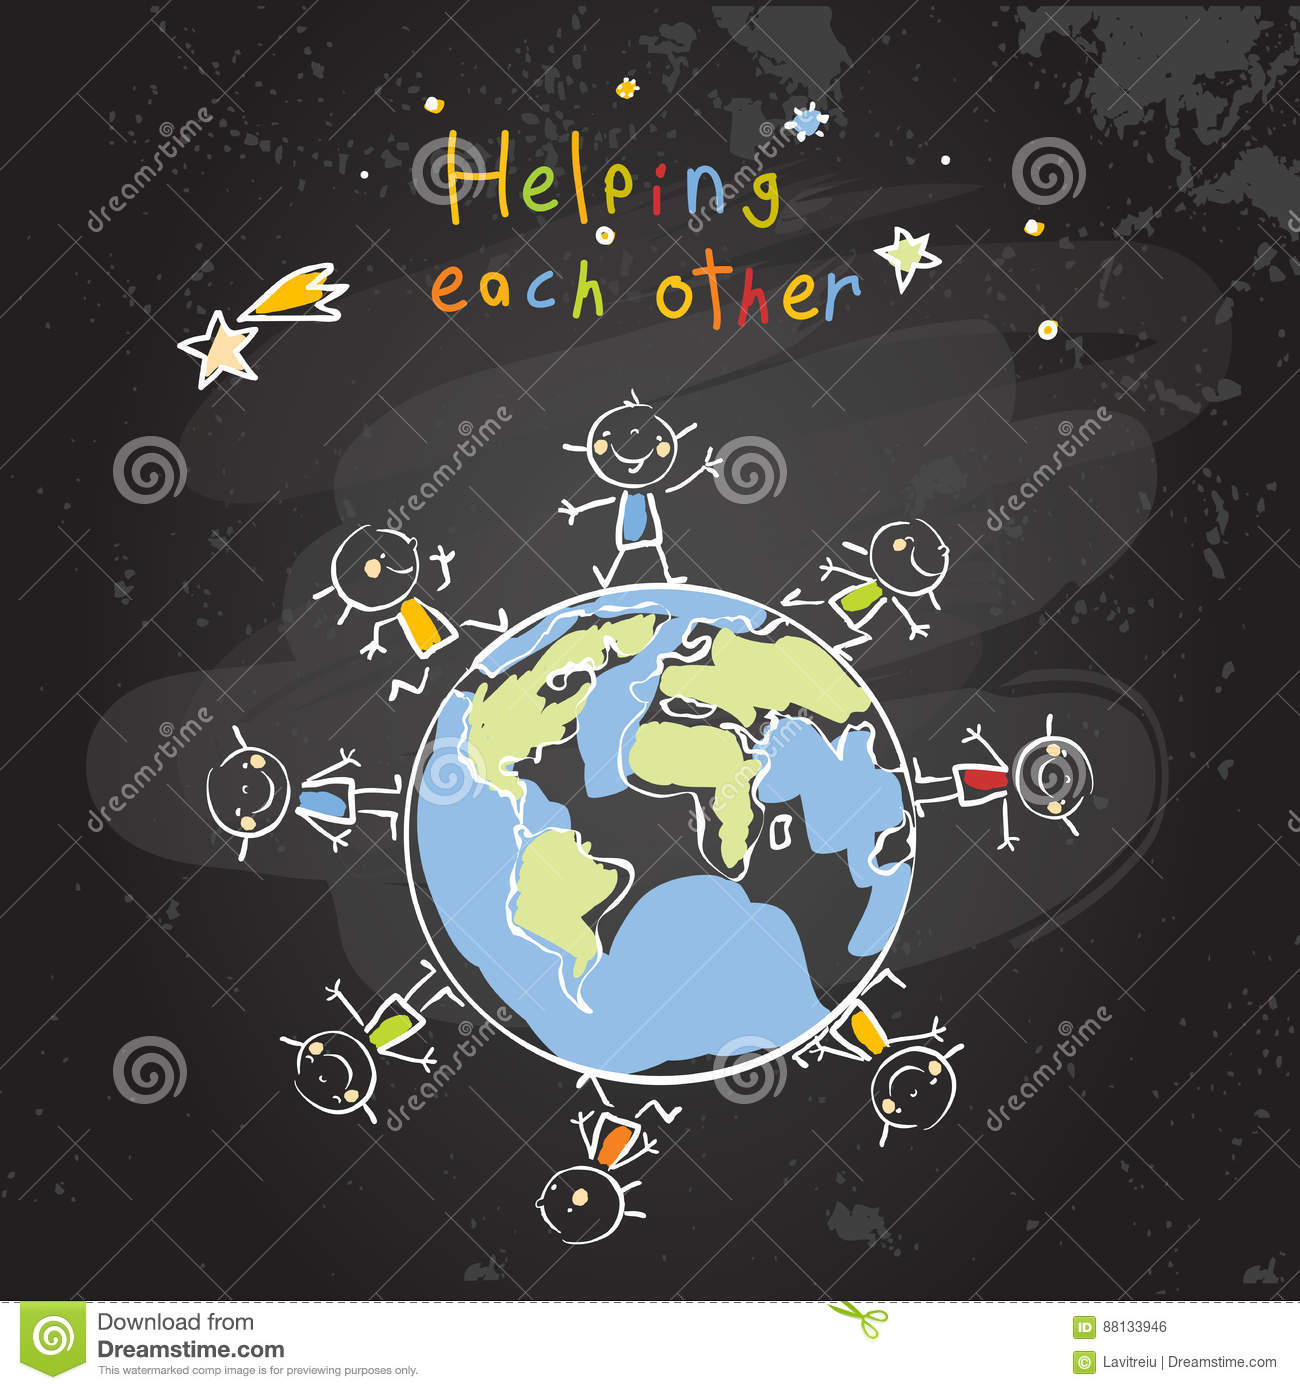 Helping Each Other: Helping Each Other Vector Illustration